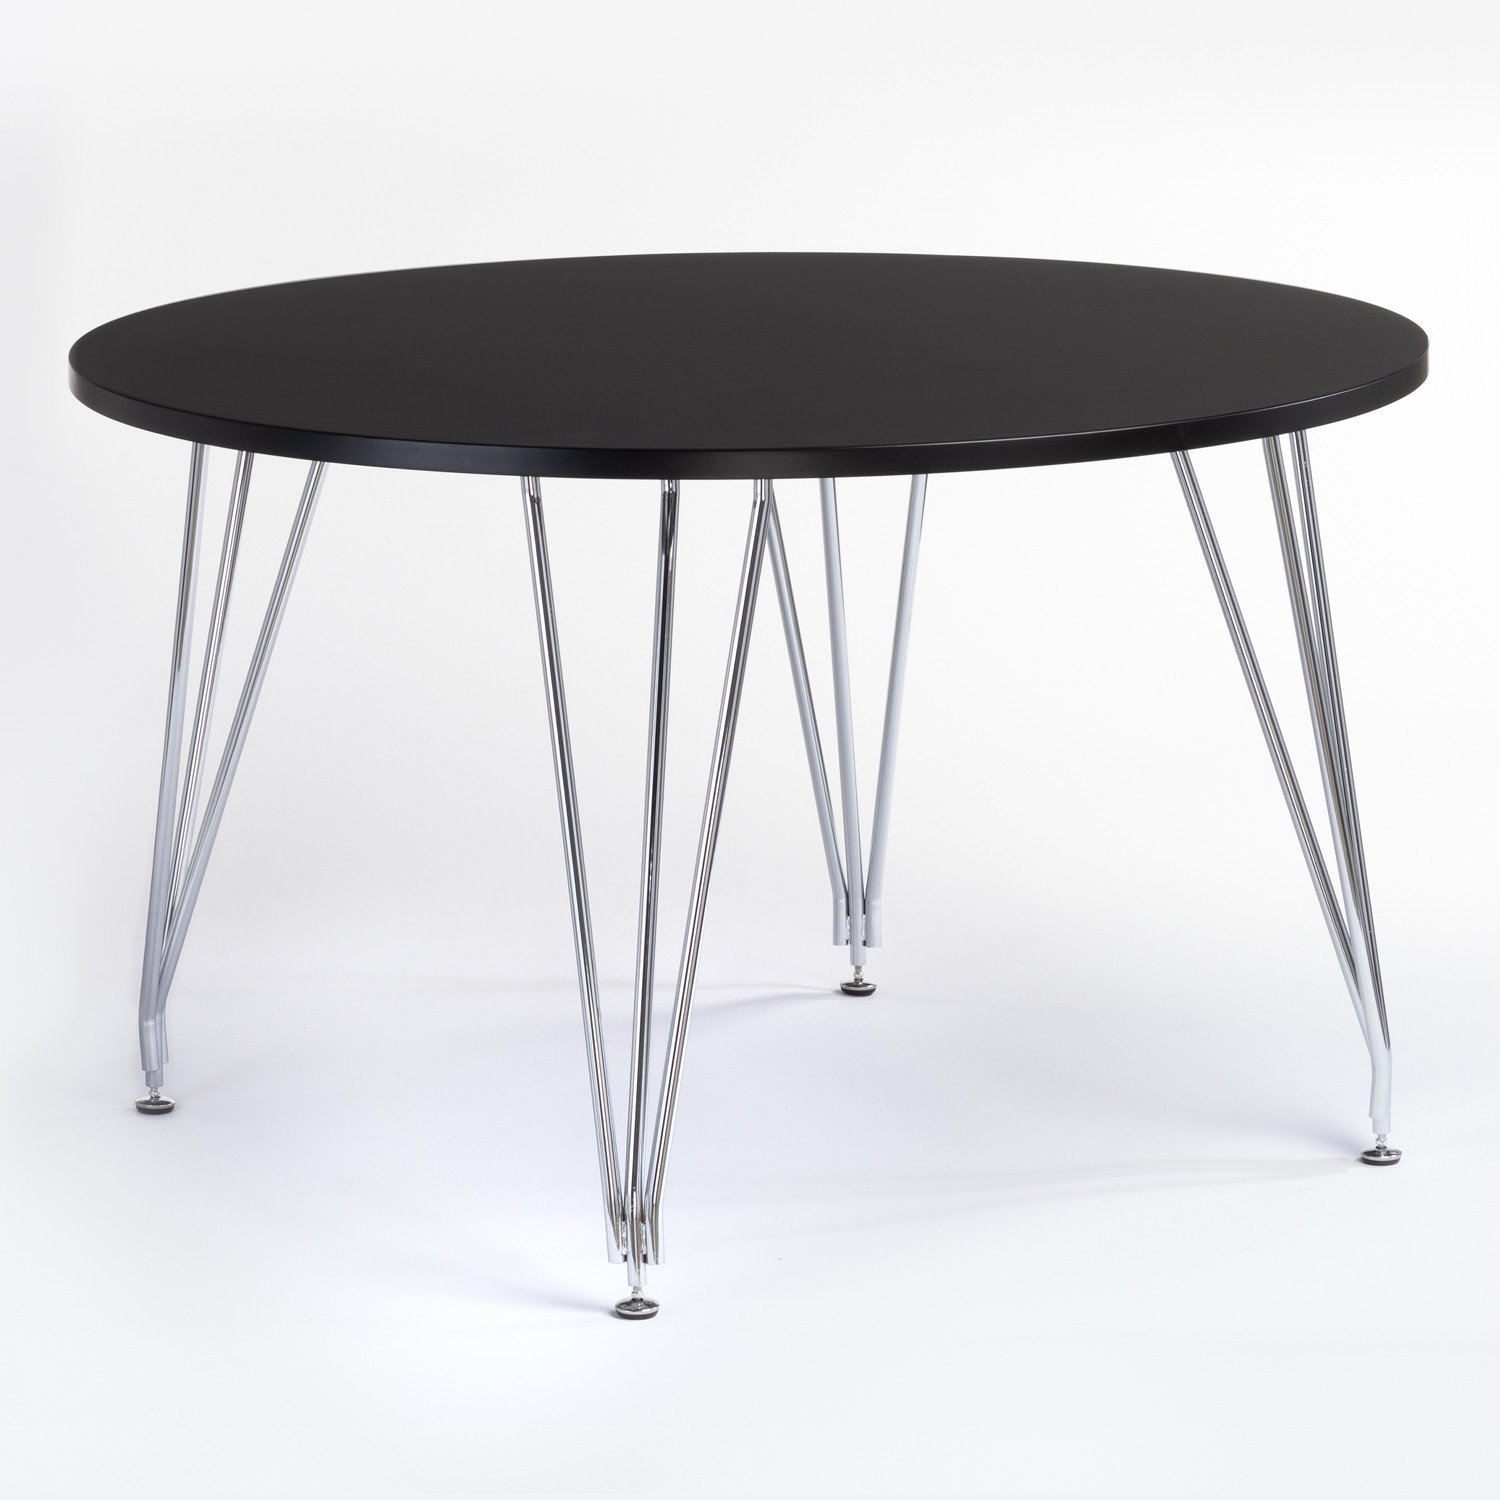 Angy Metallic Table Ø120, gallery image 1